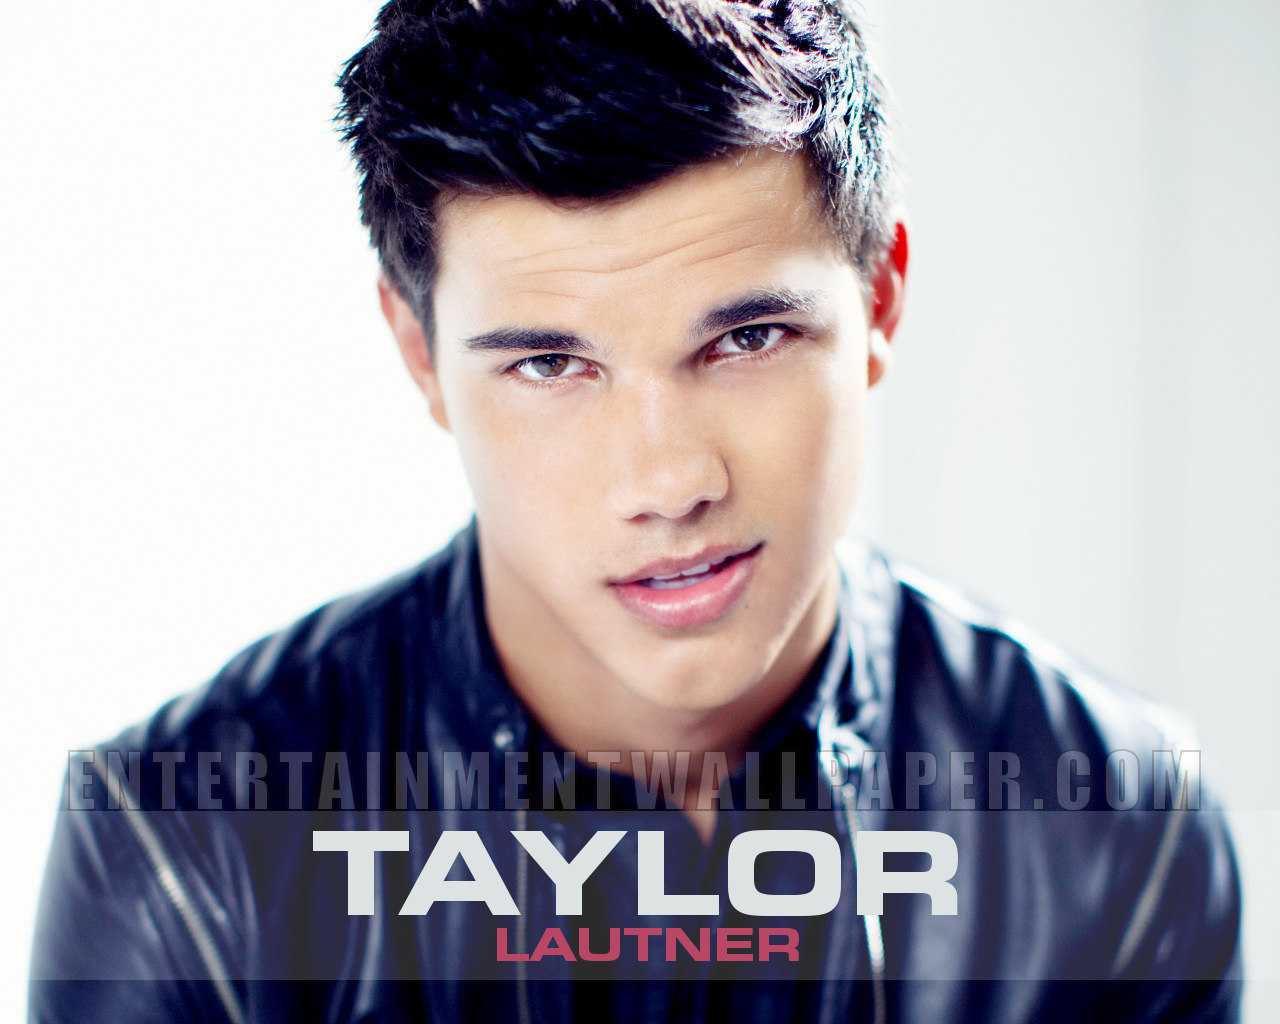 Taylor Lautner Official Gallery Taylor-Lautner-taylor-lautner-12054463-1280-1024